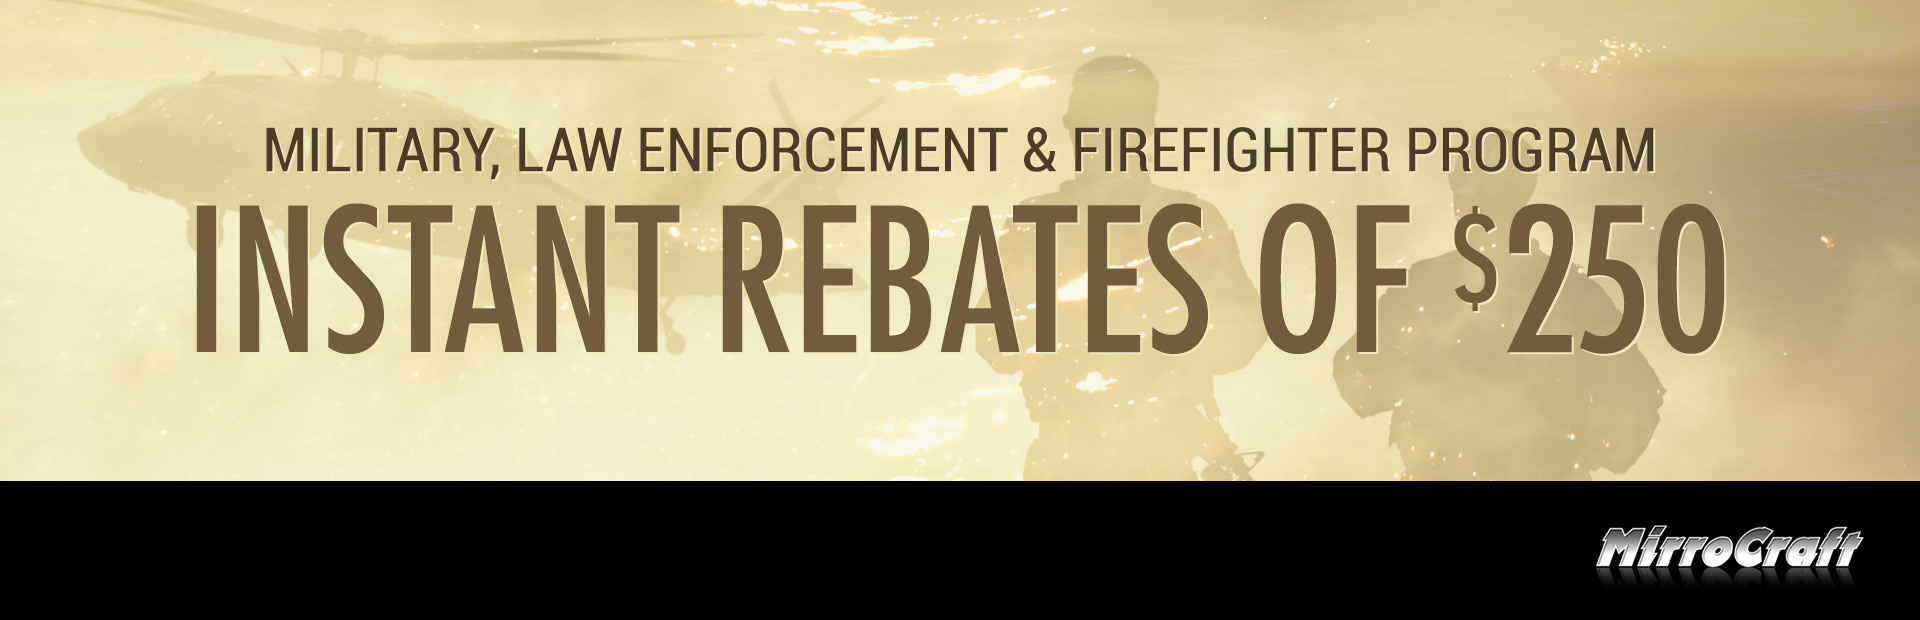 MirroCraft: MILITARY, LAW ENFORCEMENT & FIREFIGHTER PROGRAM